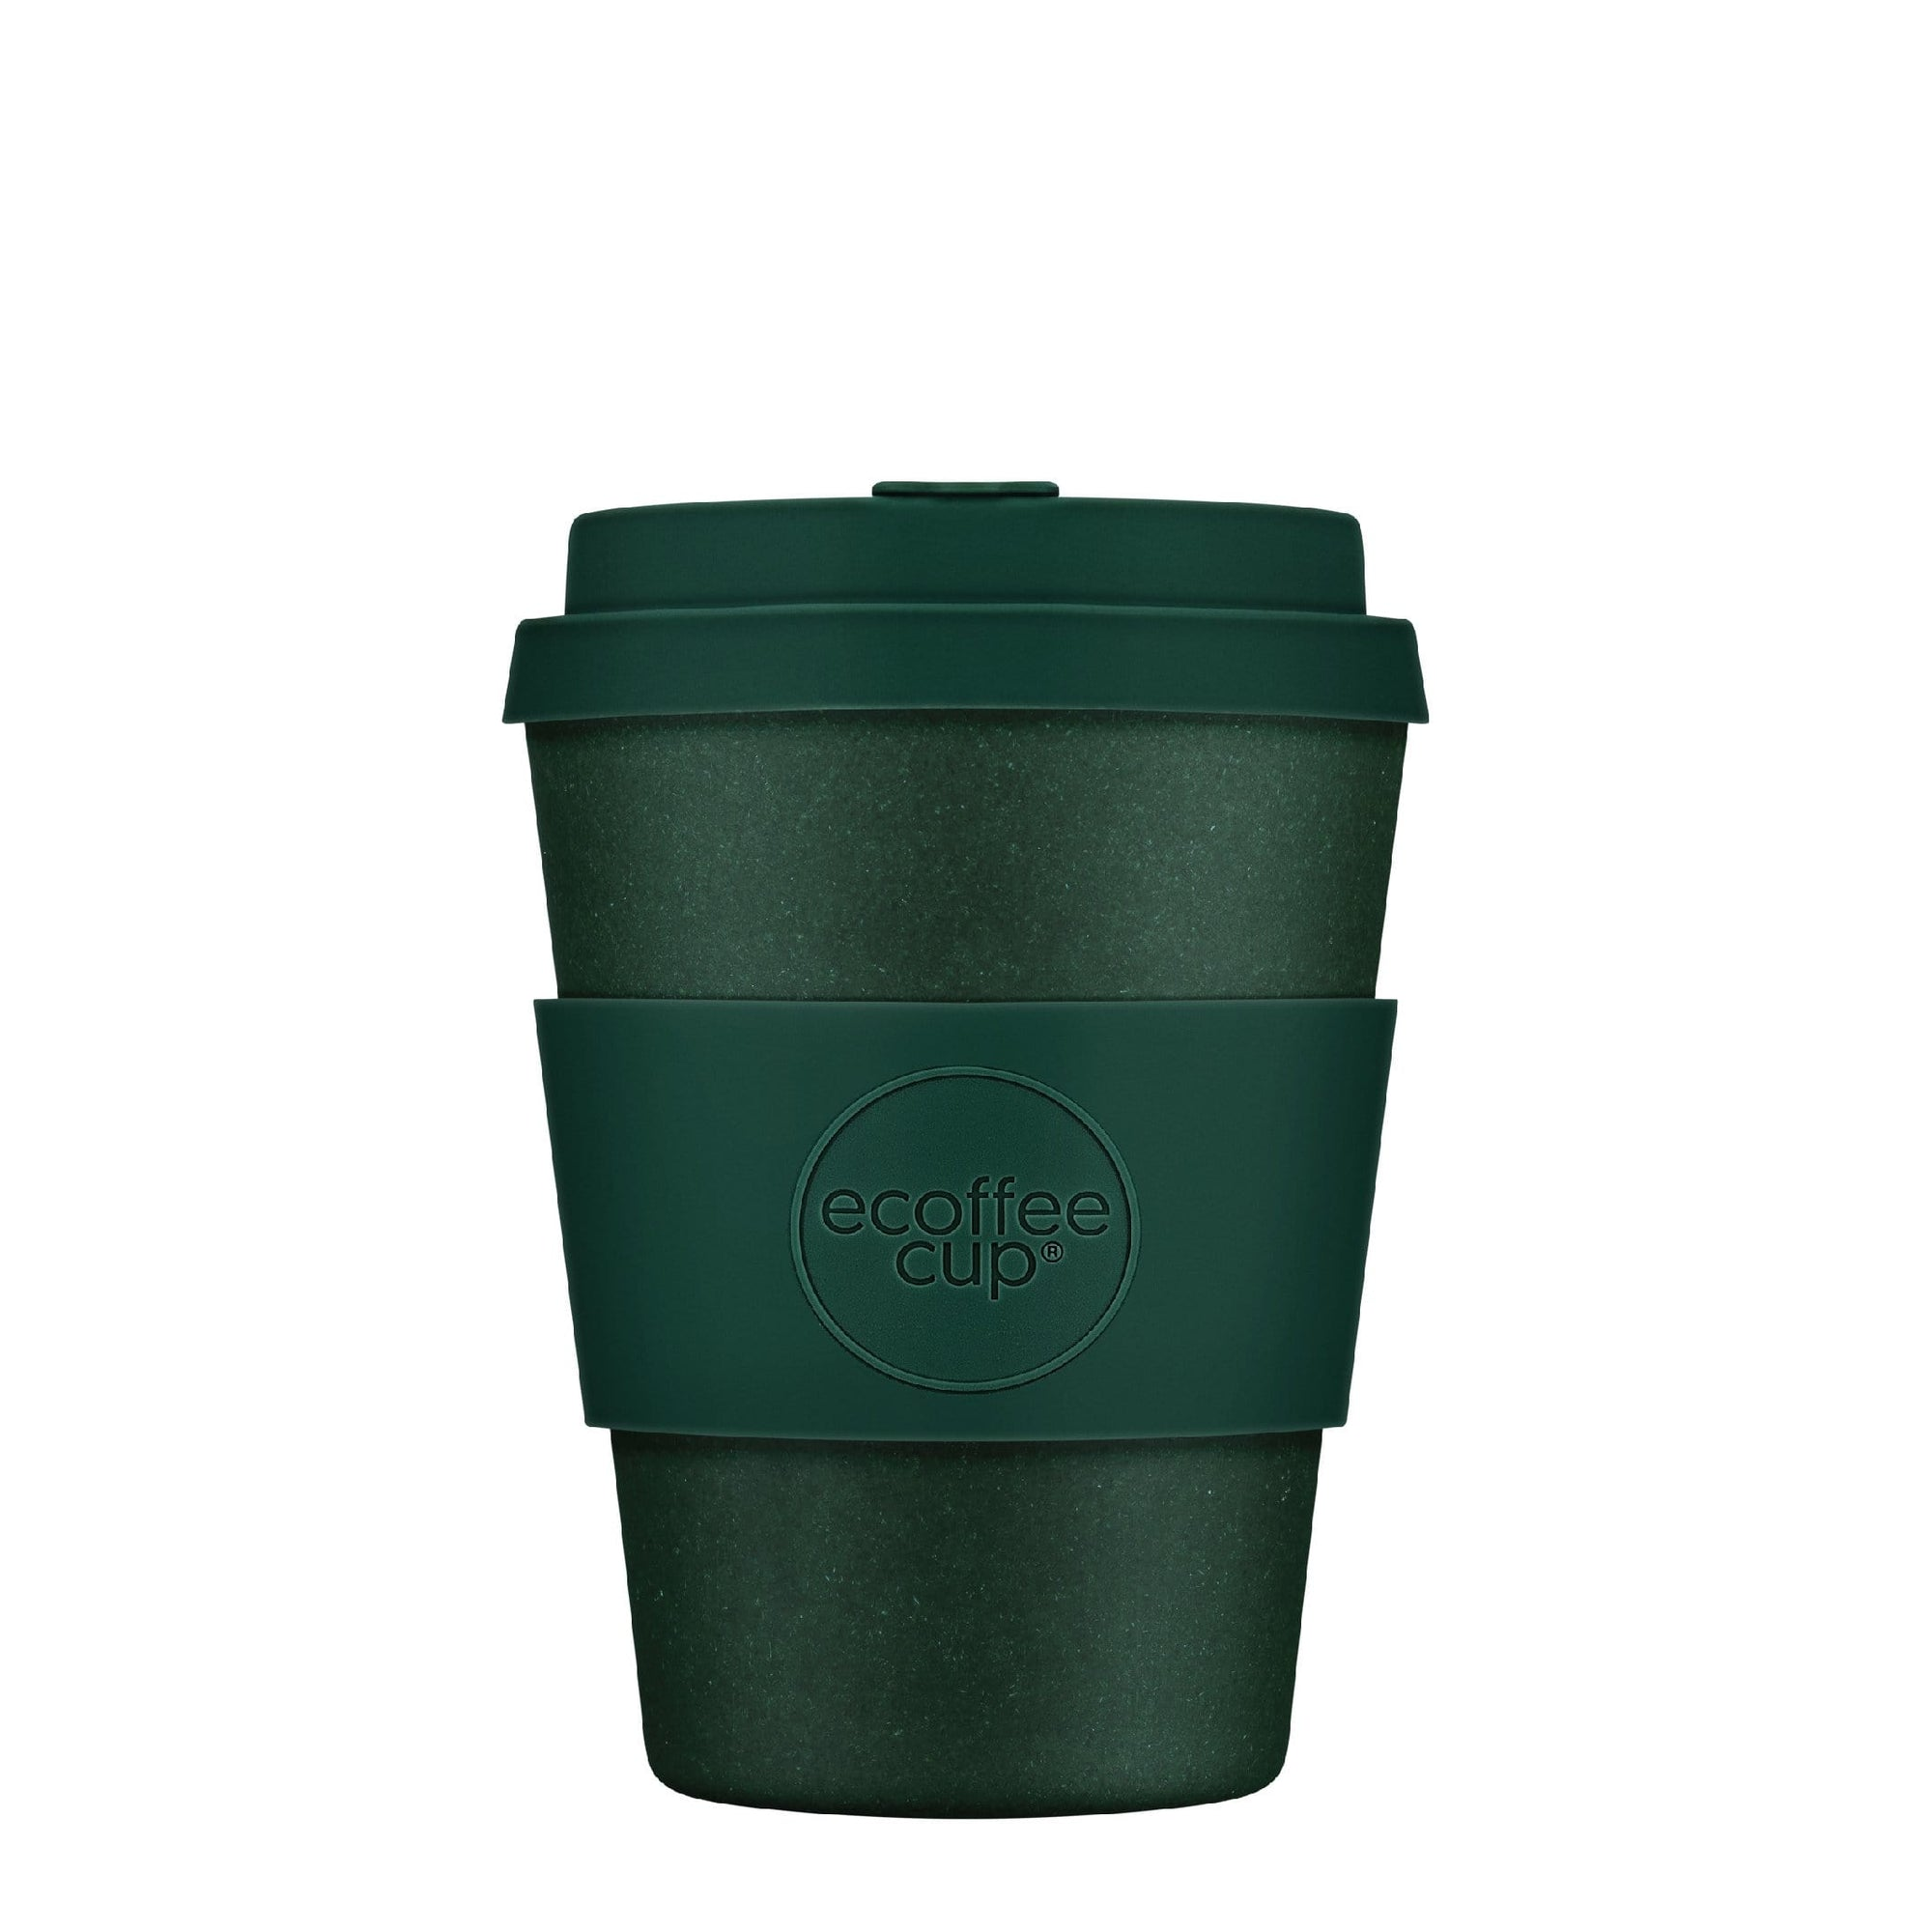 Ecoffee Cup - Leave it out Arthur